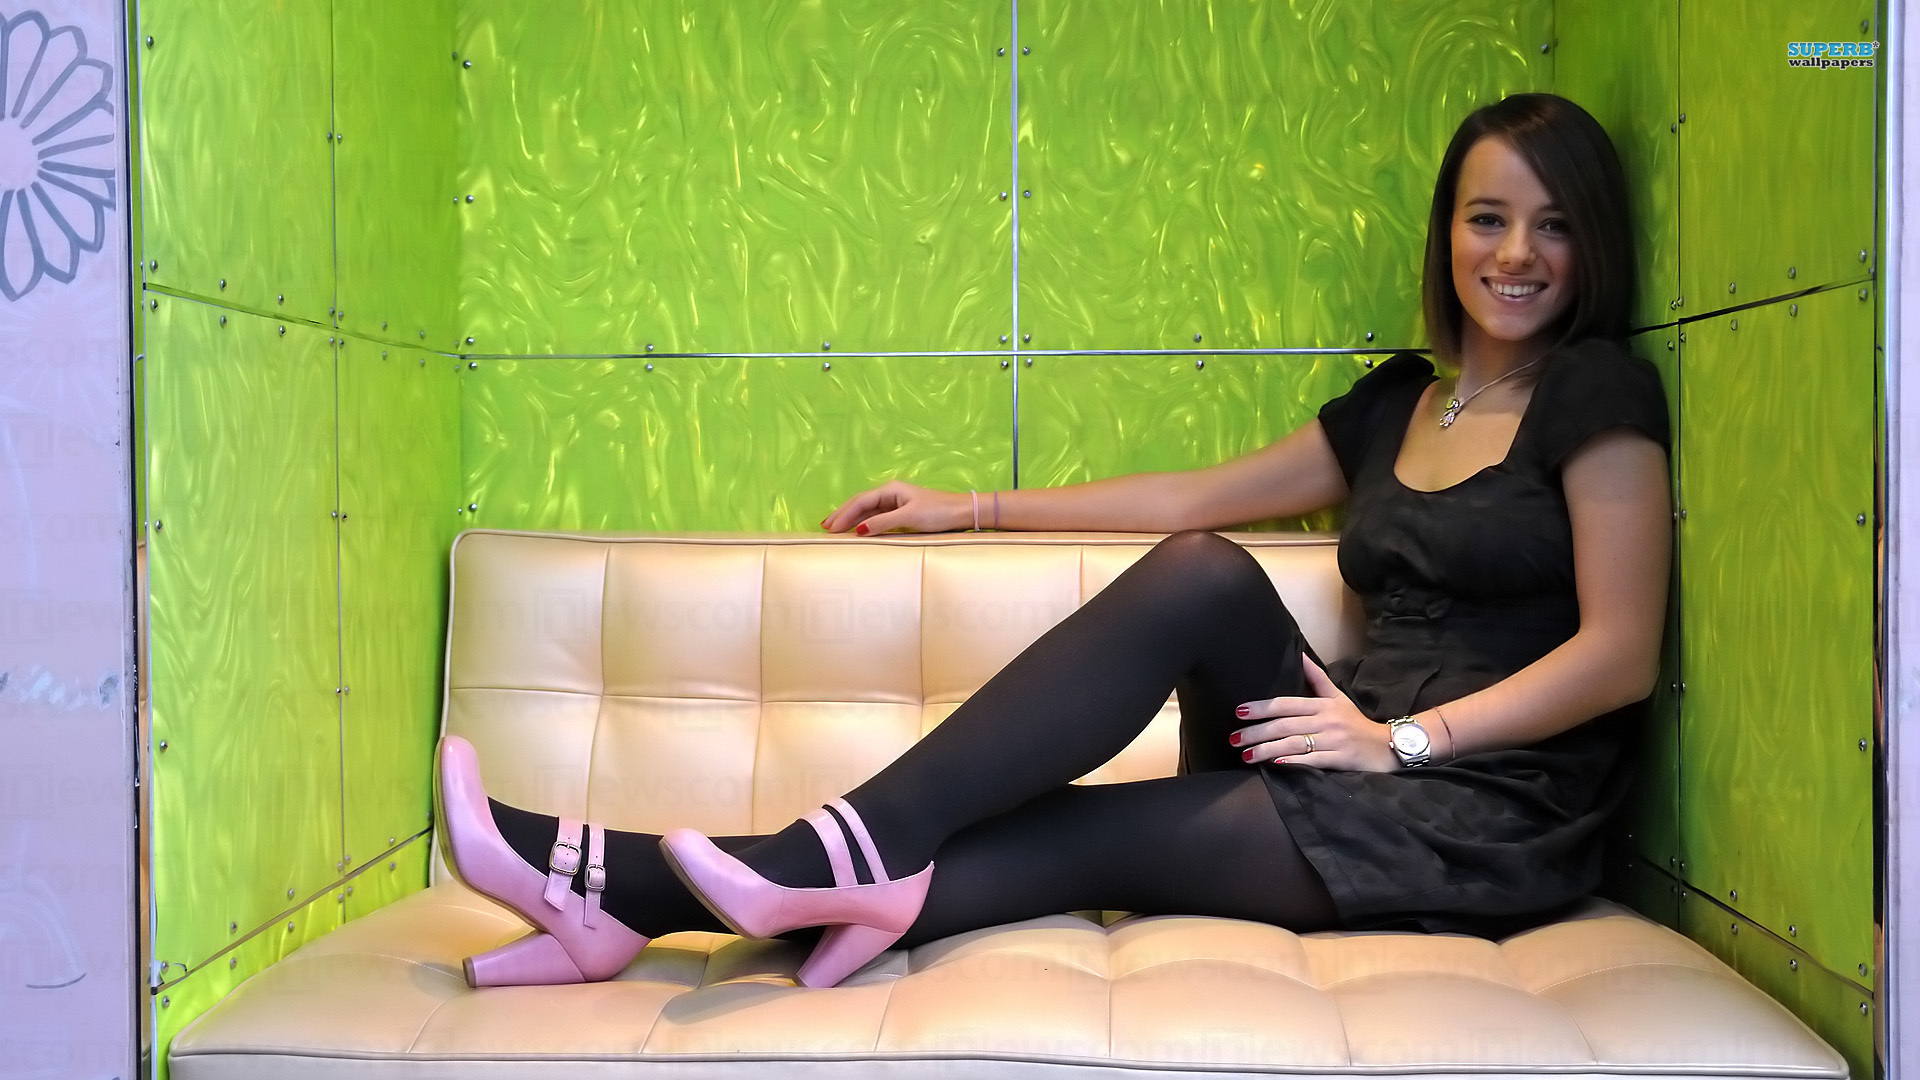 brunettes Alizée pantyhose high HD Wallpaper